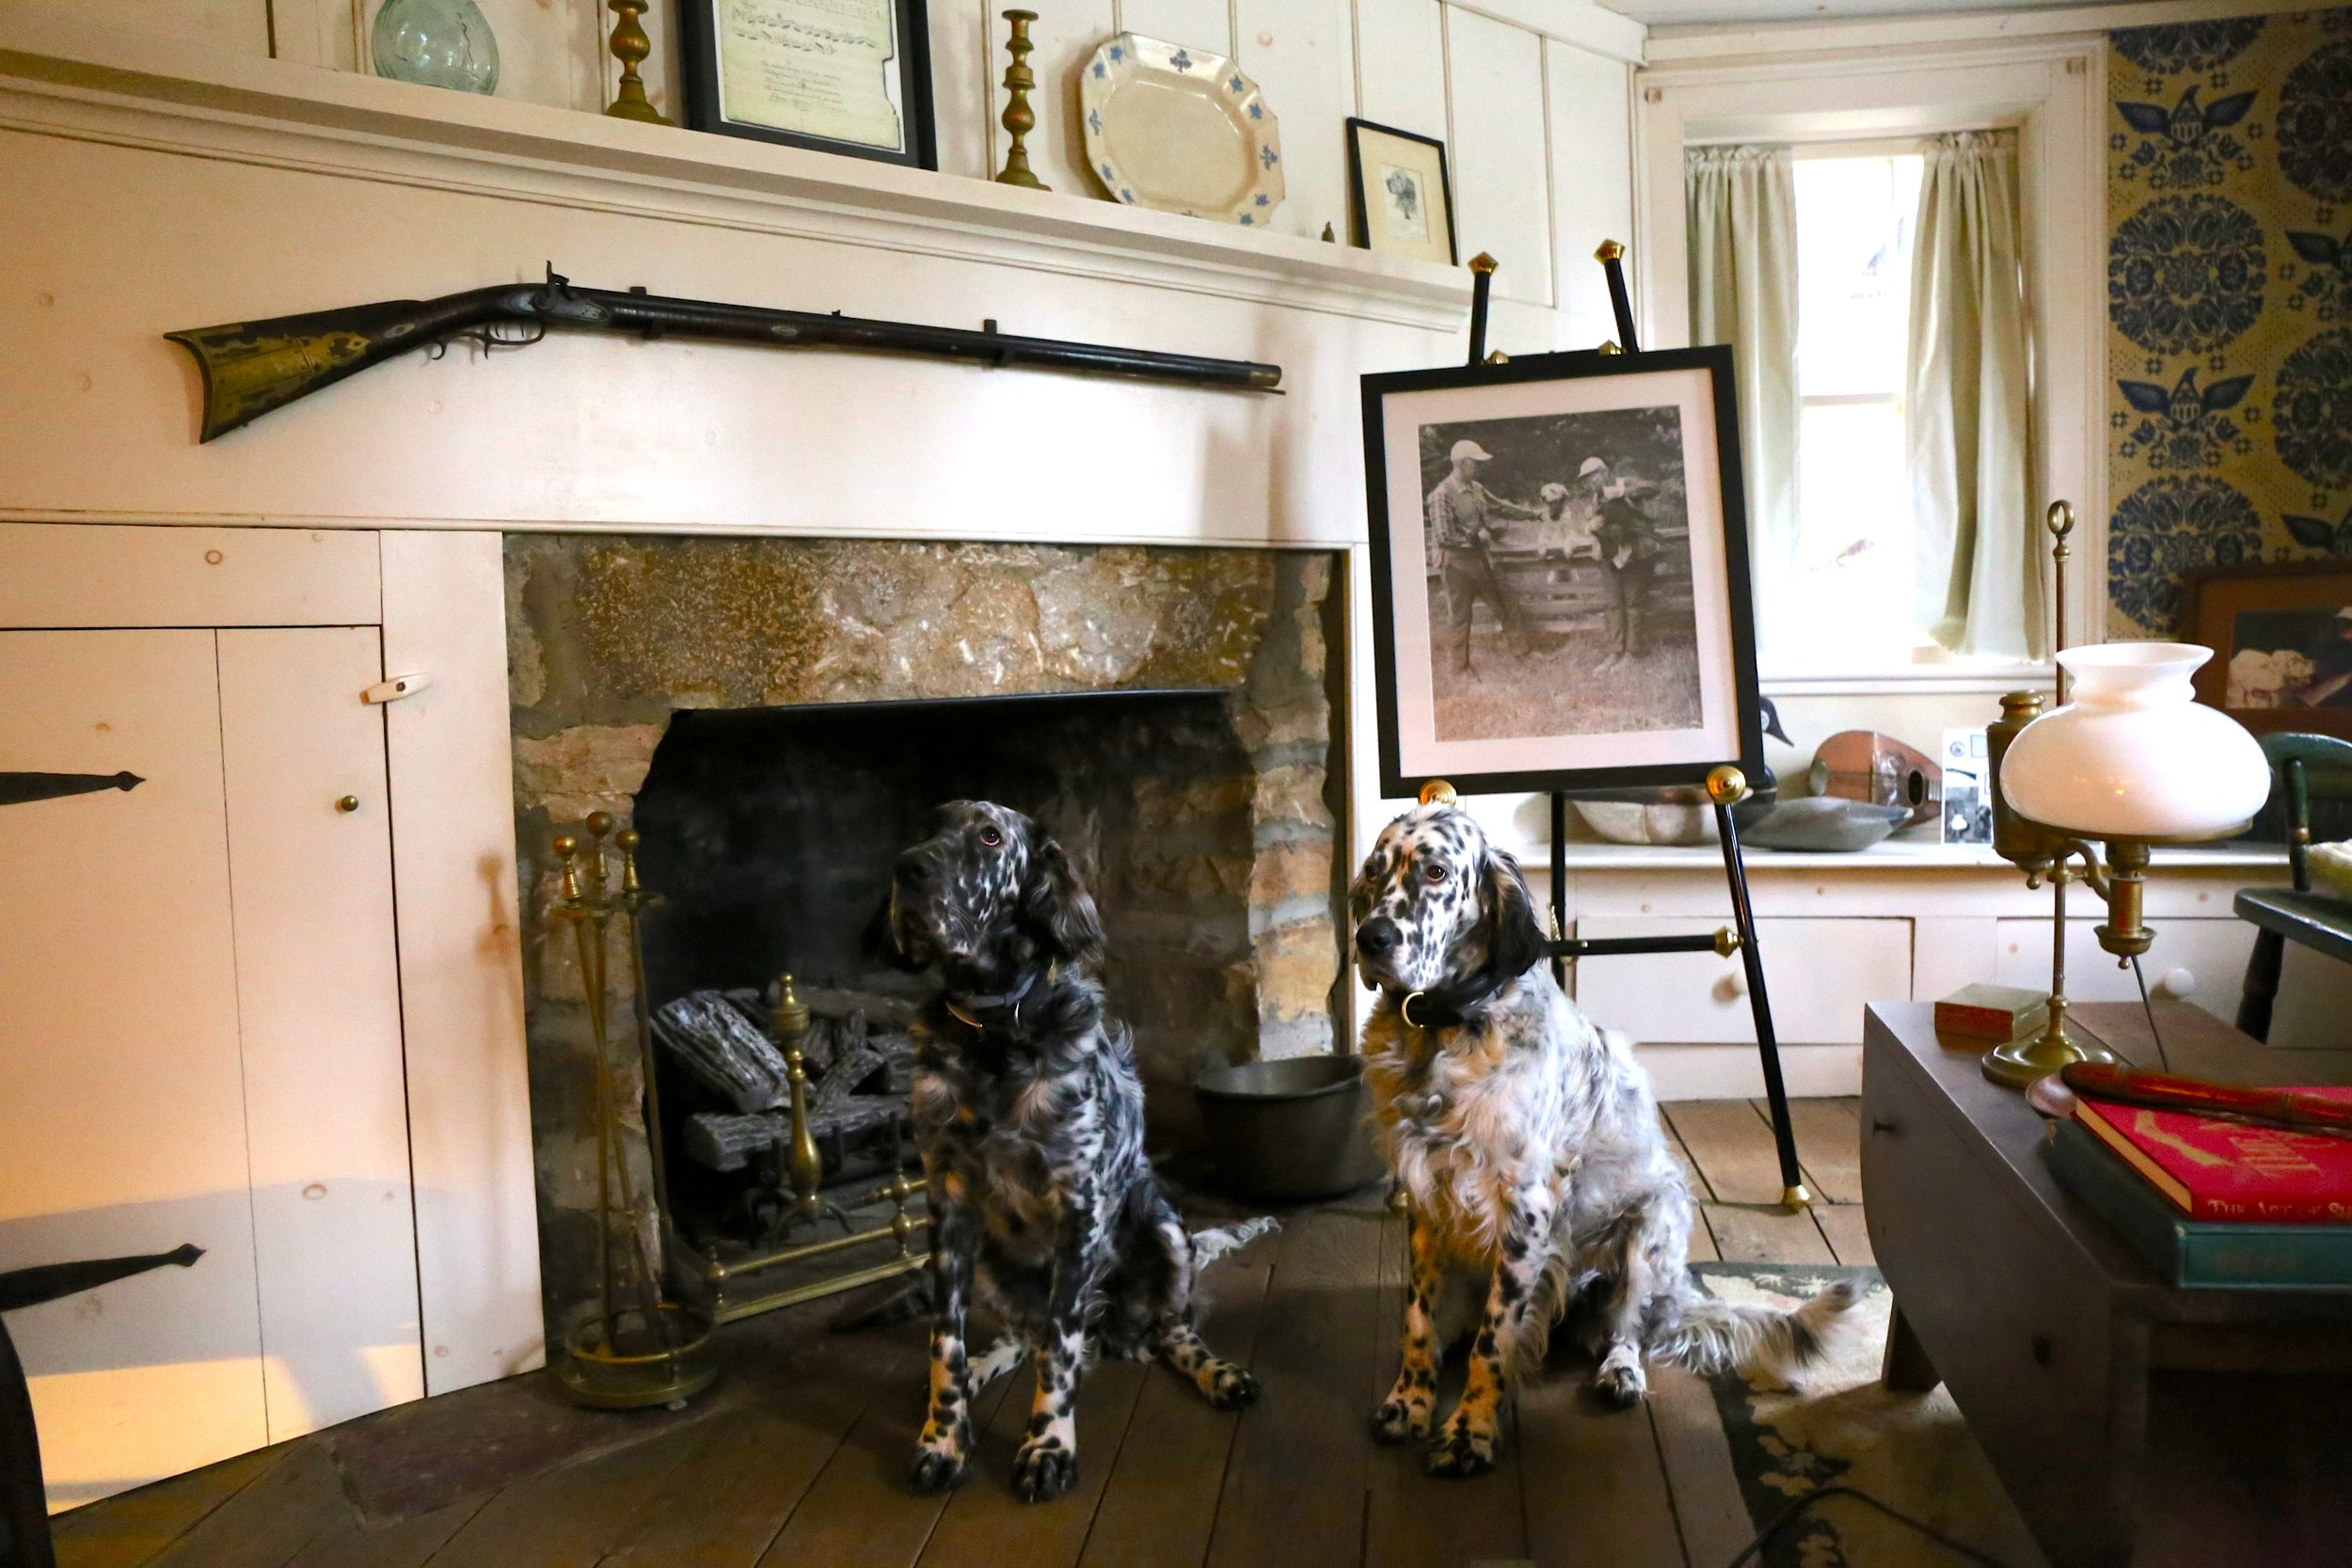 OH Setters Laurel and Willow posing in the long room. Carrying on the legacy of fine grouse dogs roaming the rooms at Old Hemlock.